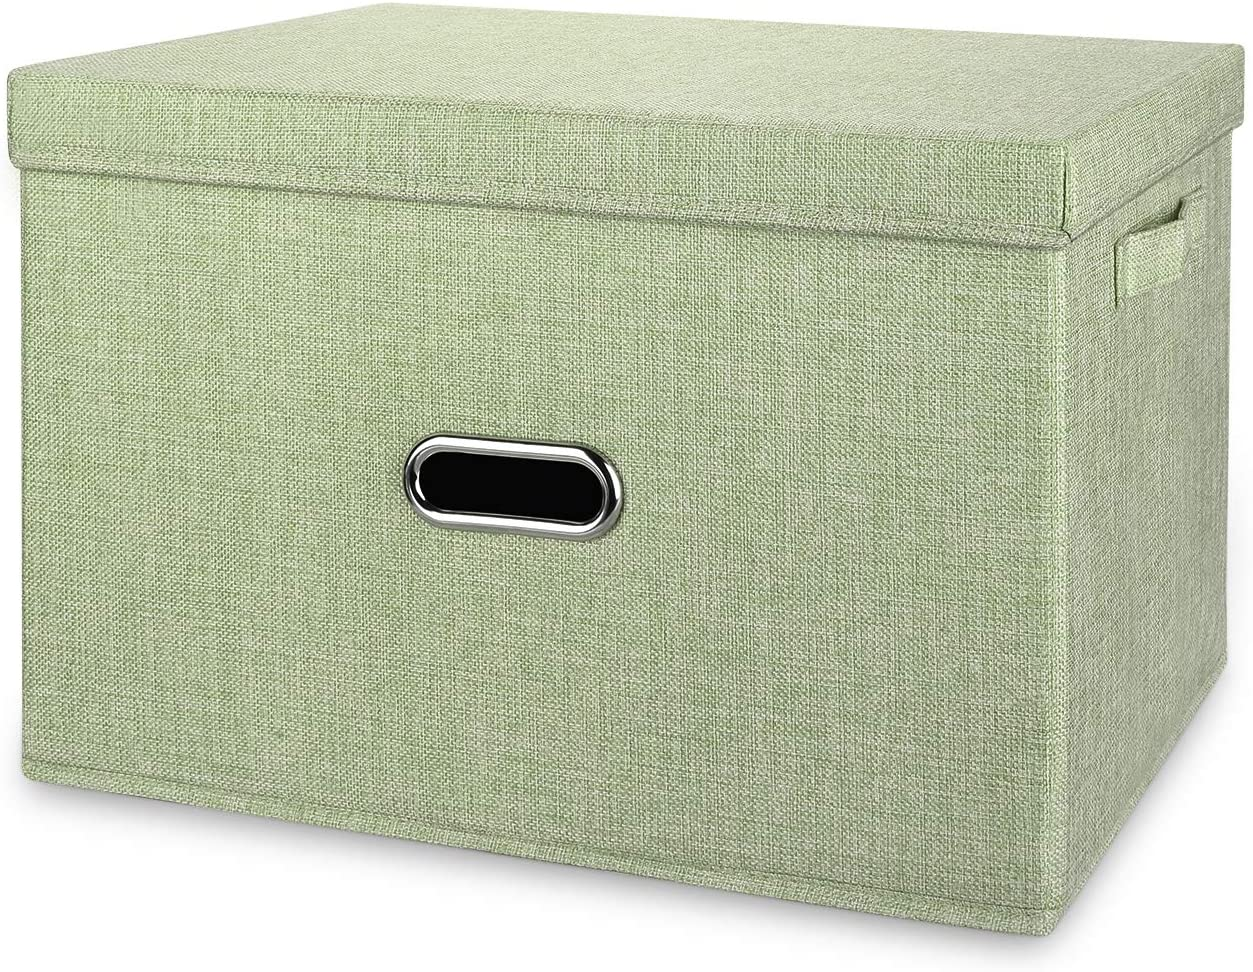 Valease Large Linen Collapsible Storage Bins with Removable Lids and Handles, Washable Storage Box Containers Baskets Cube with Cover for Bedroom,Closet,Office,Living Room,Nursery (Green, Large)